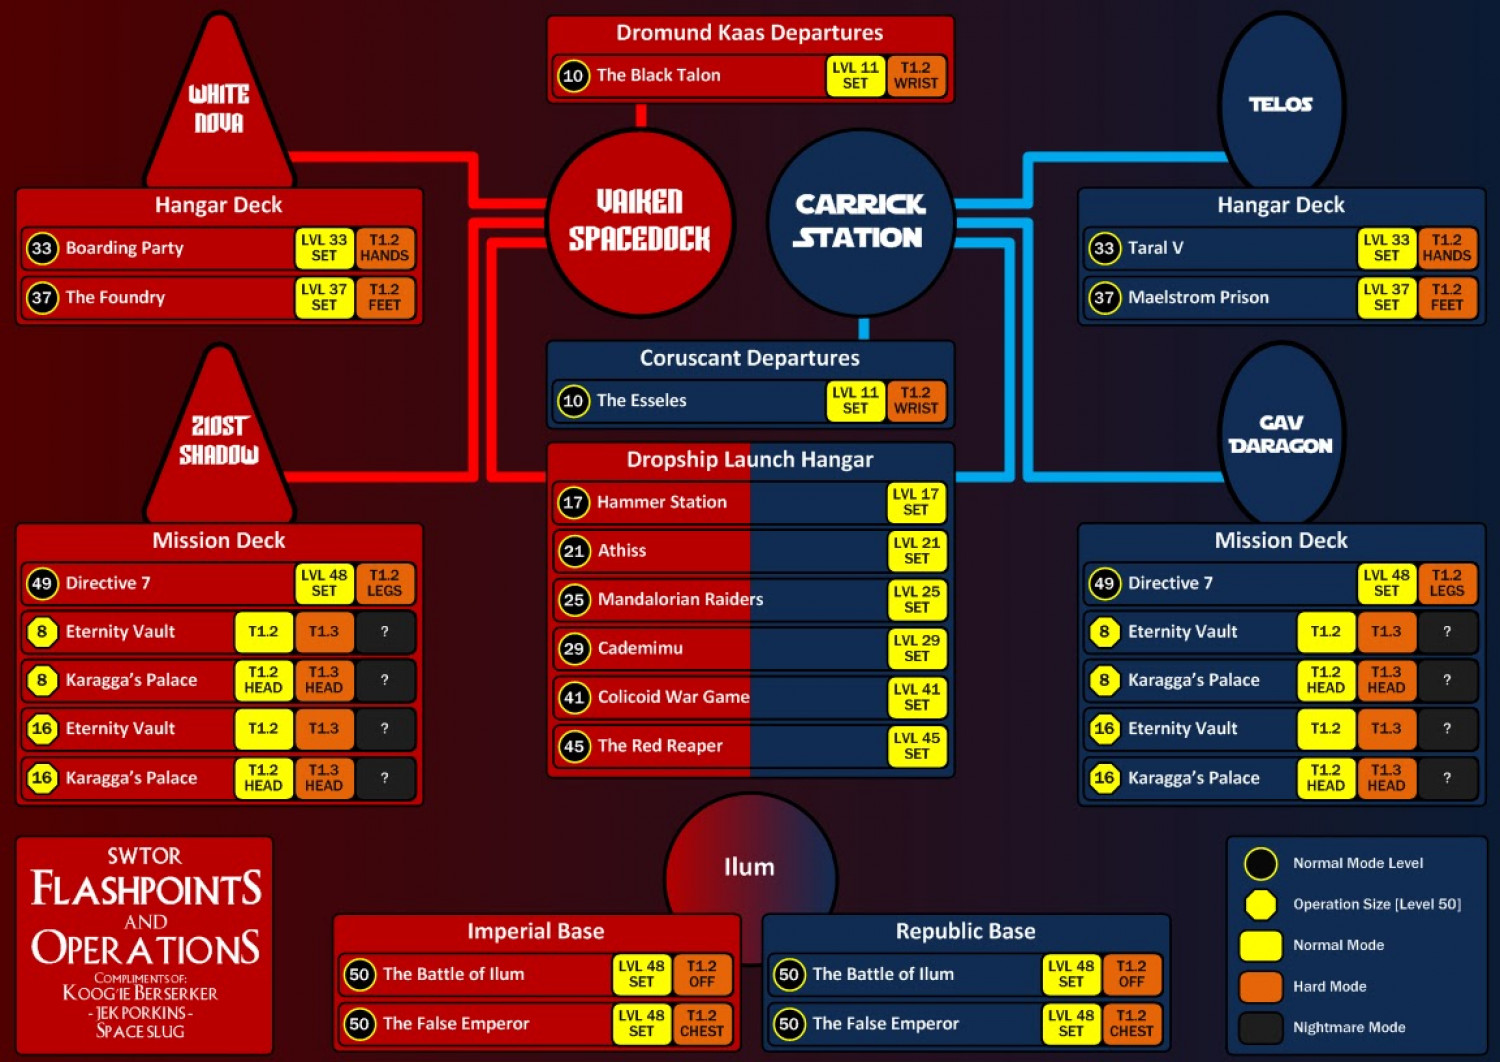 SWTOR Flashpoints, Operations & Items Infographic